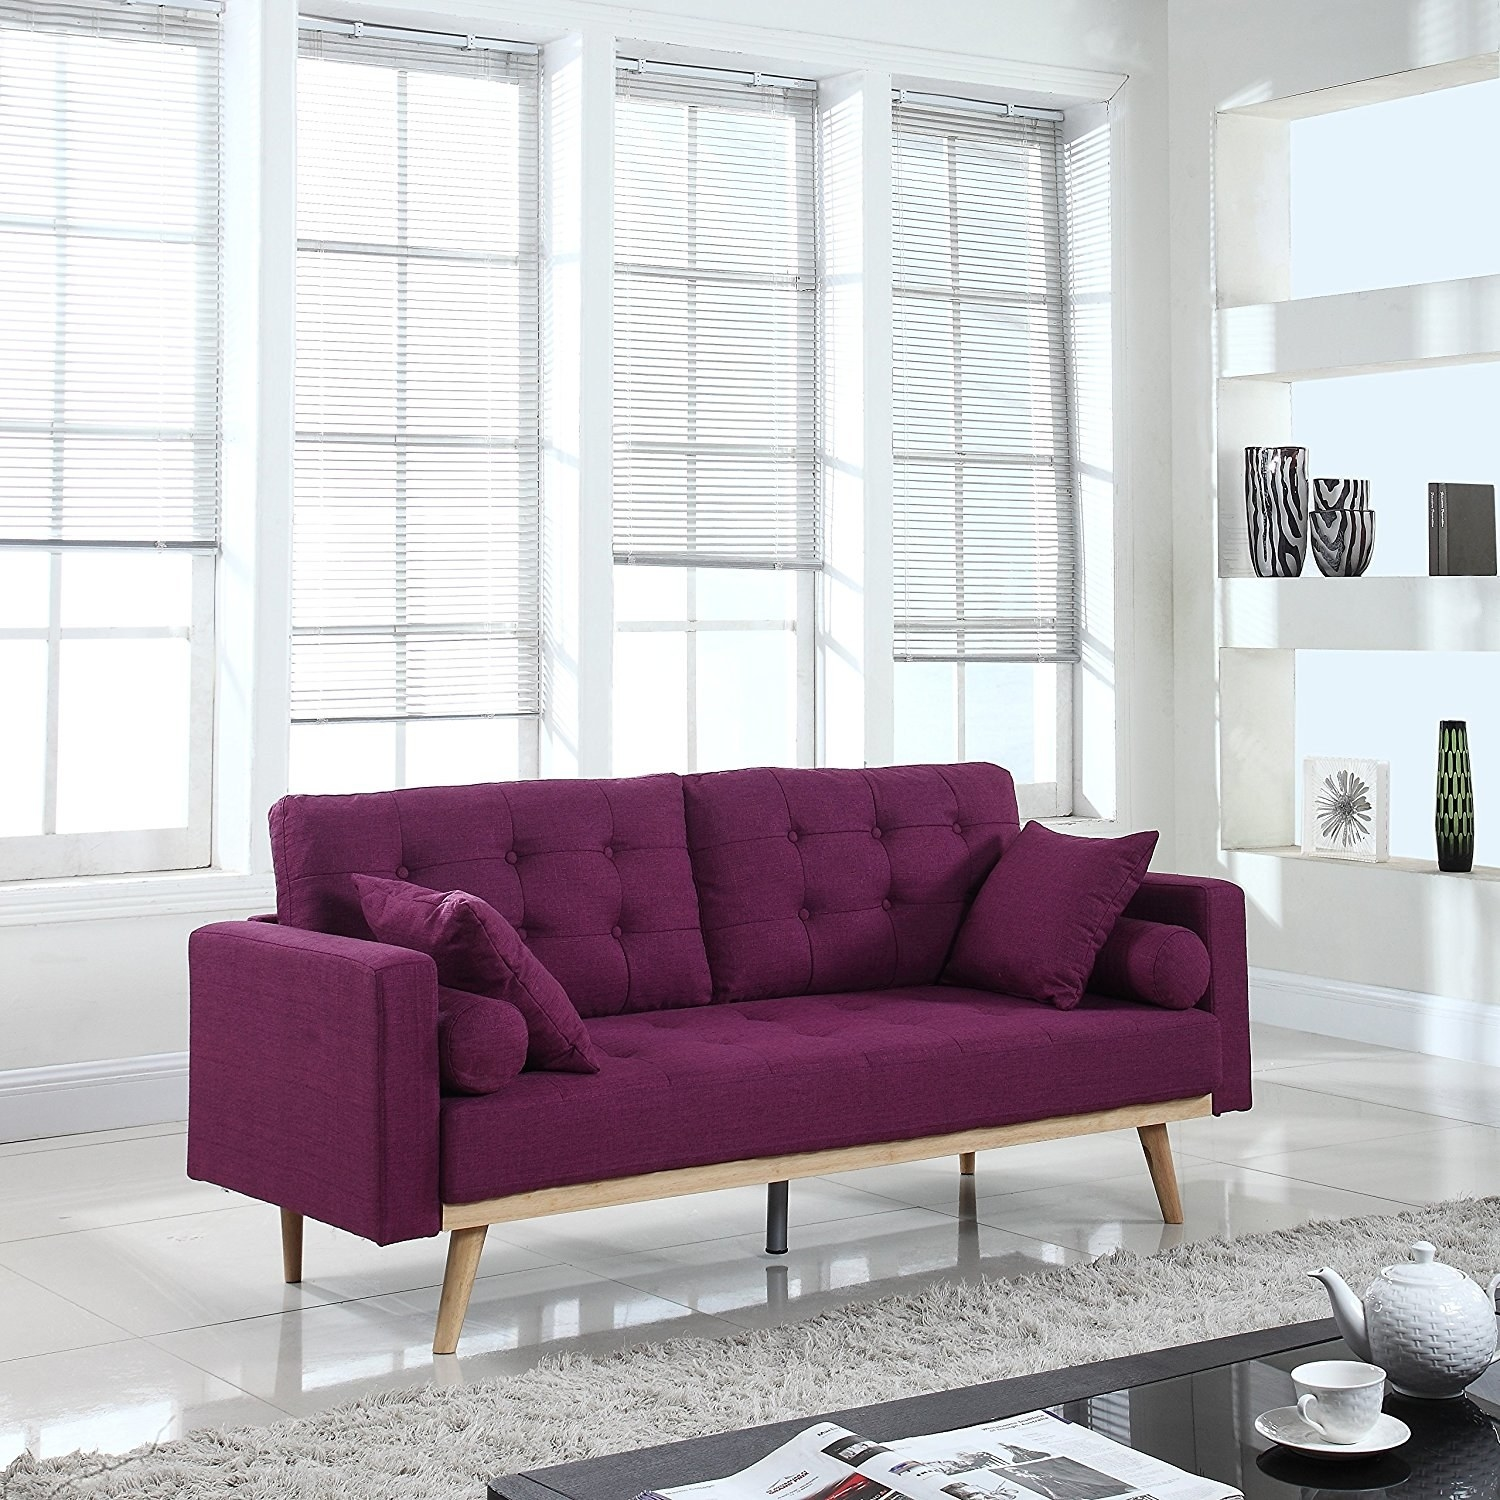 Superior A Tufted Linen Sofa In Wine, Because Nothingu0027ll Hide Wine Stains Better  Than Wine.